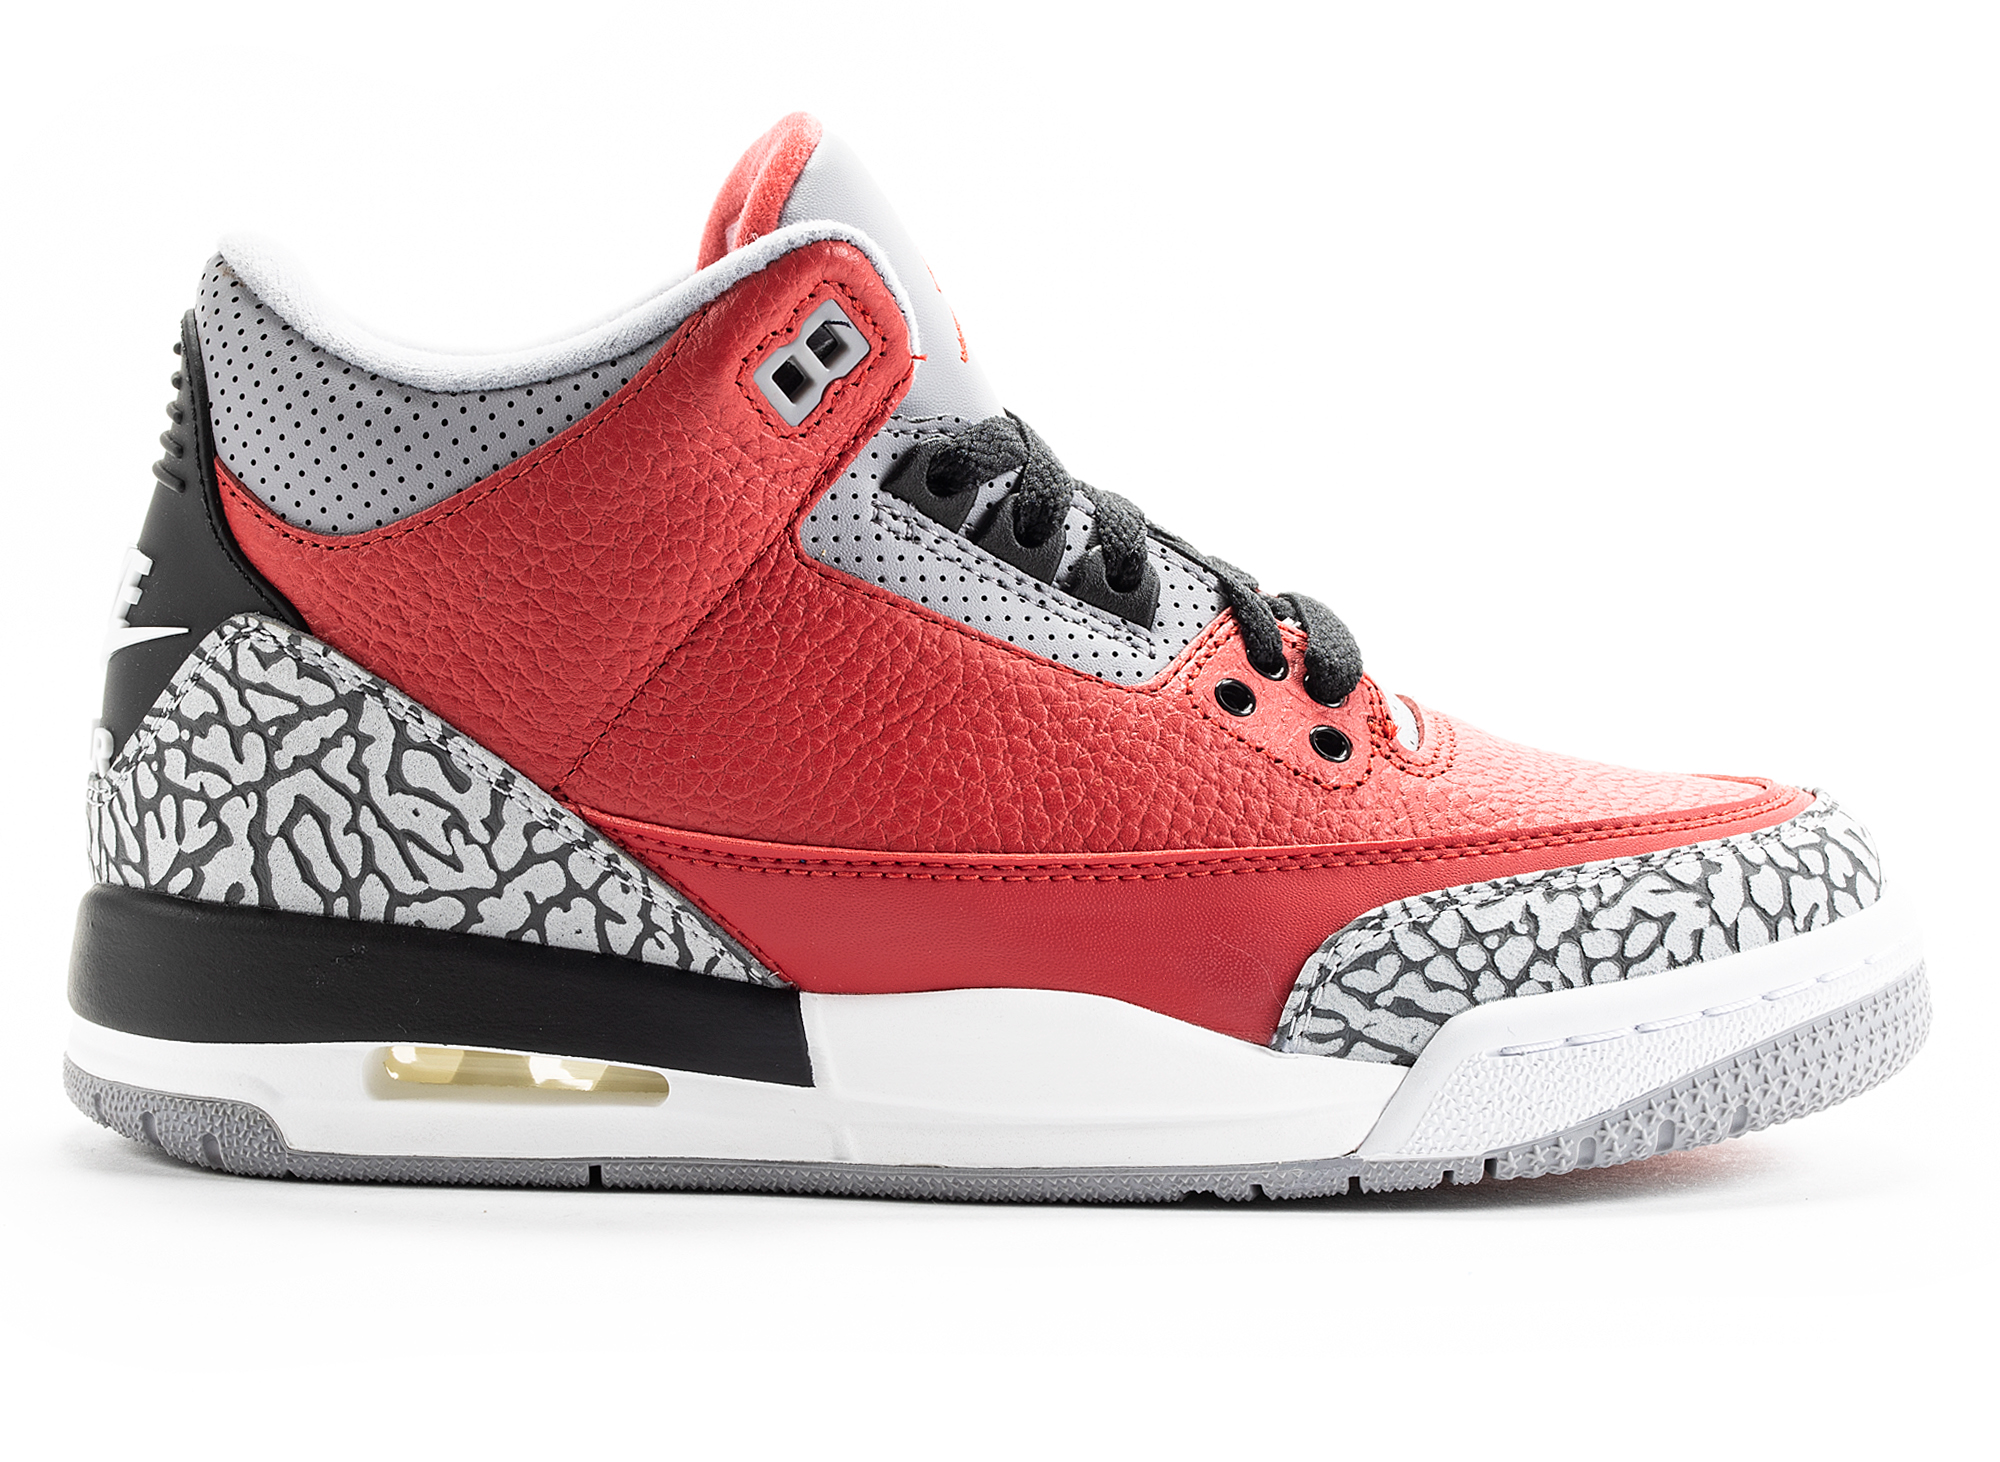 Air Jordan 3 Retro SE GS 'Fire Red'